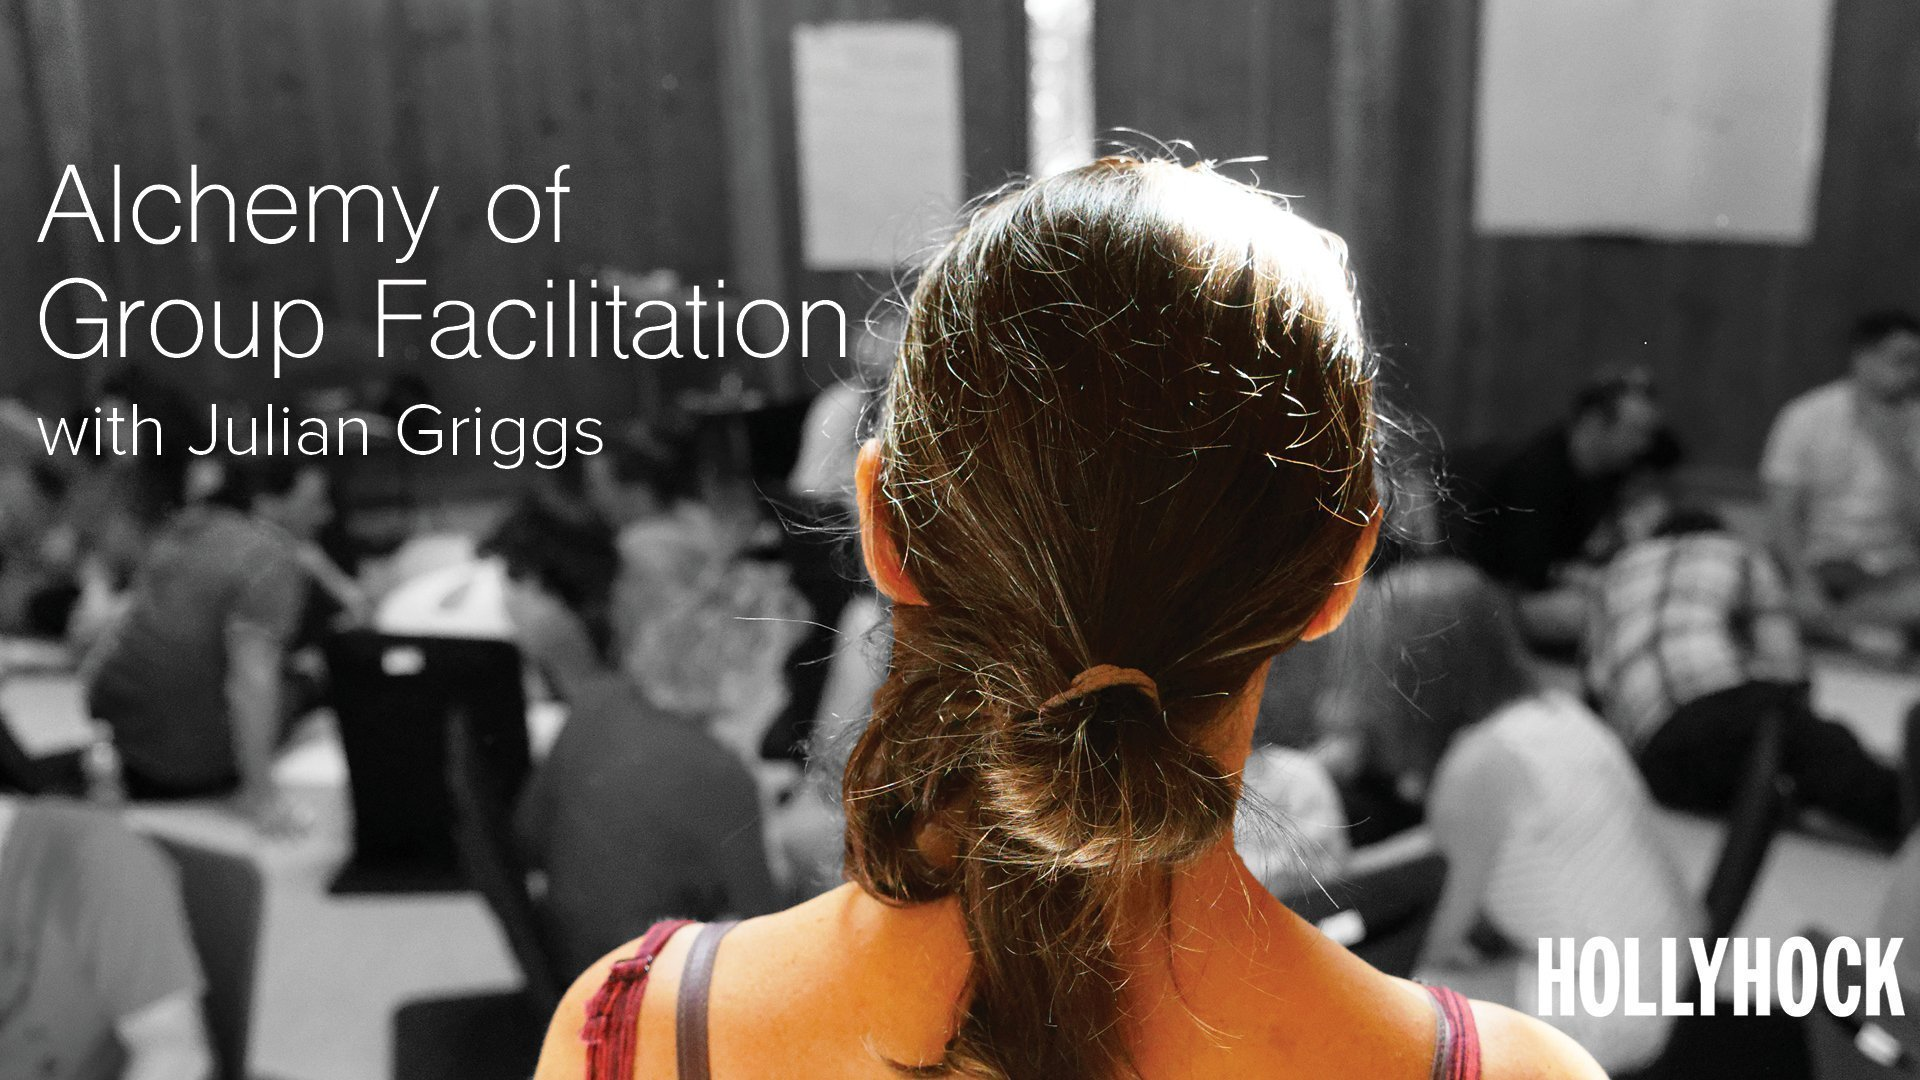 Alchemy of Group Facilitation at Hollyhock Vancouver